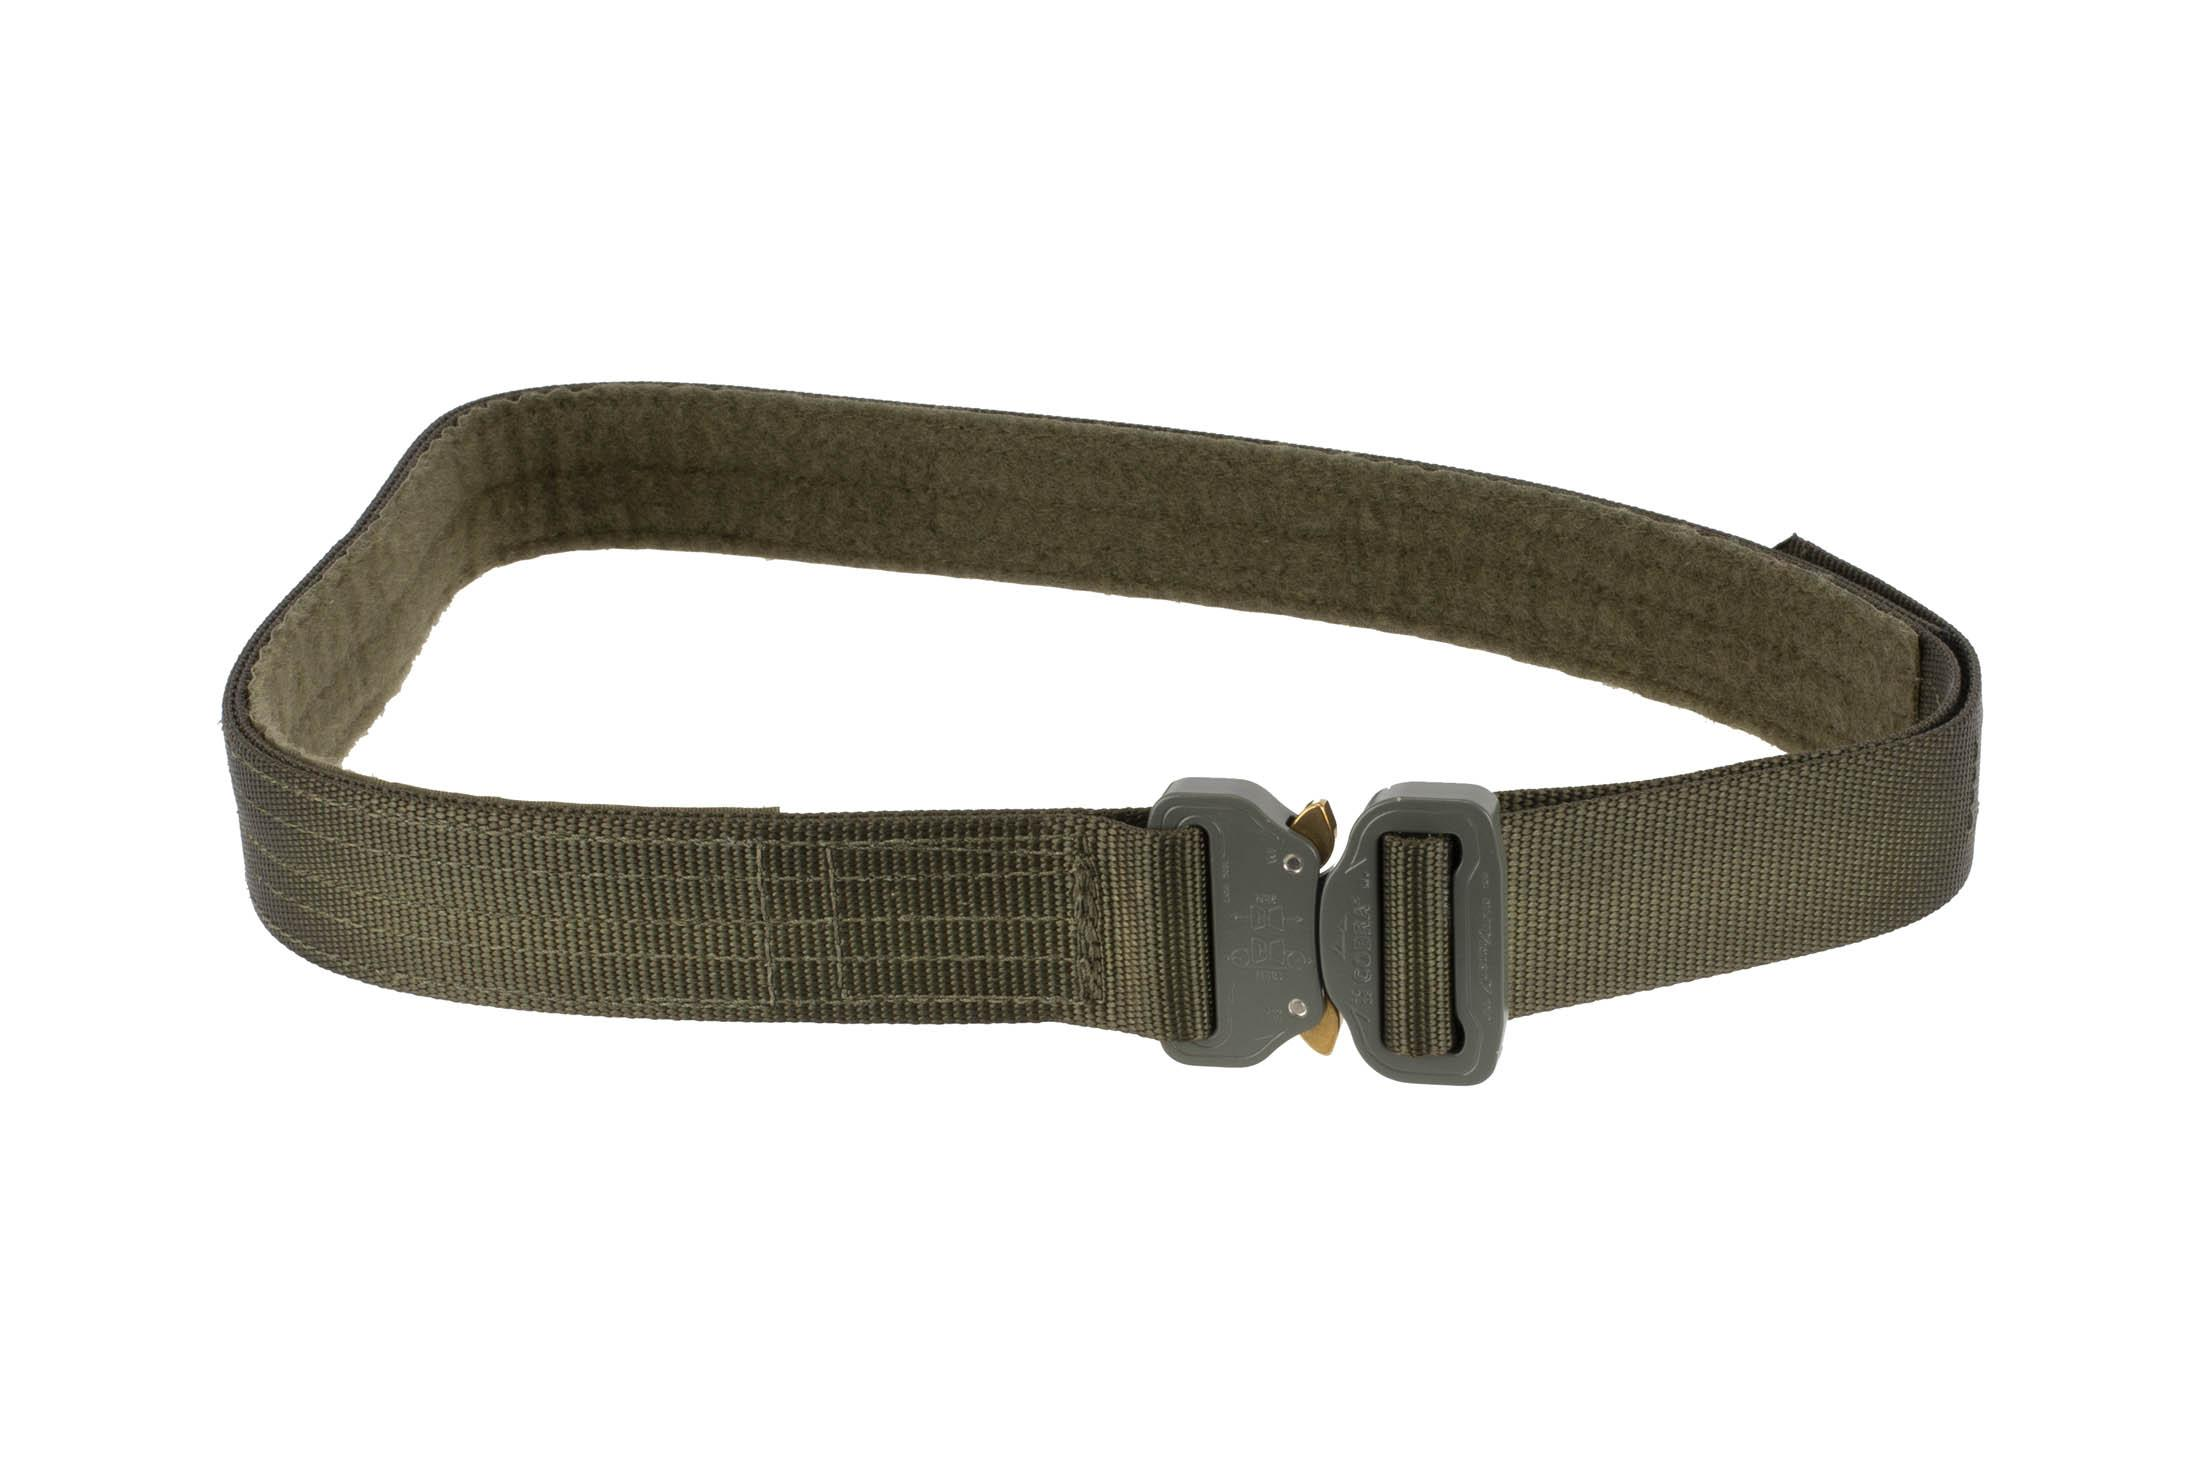 High Speed Gear 1.5in medium olive drab green Rigger Belt coyote is equipped with a cobra buckle